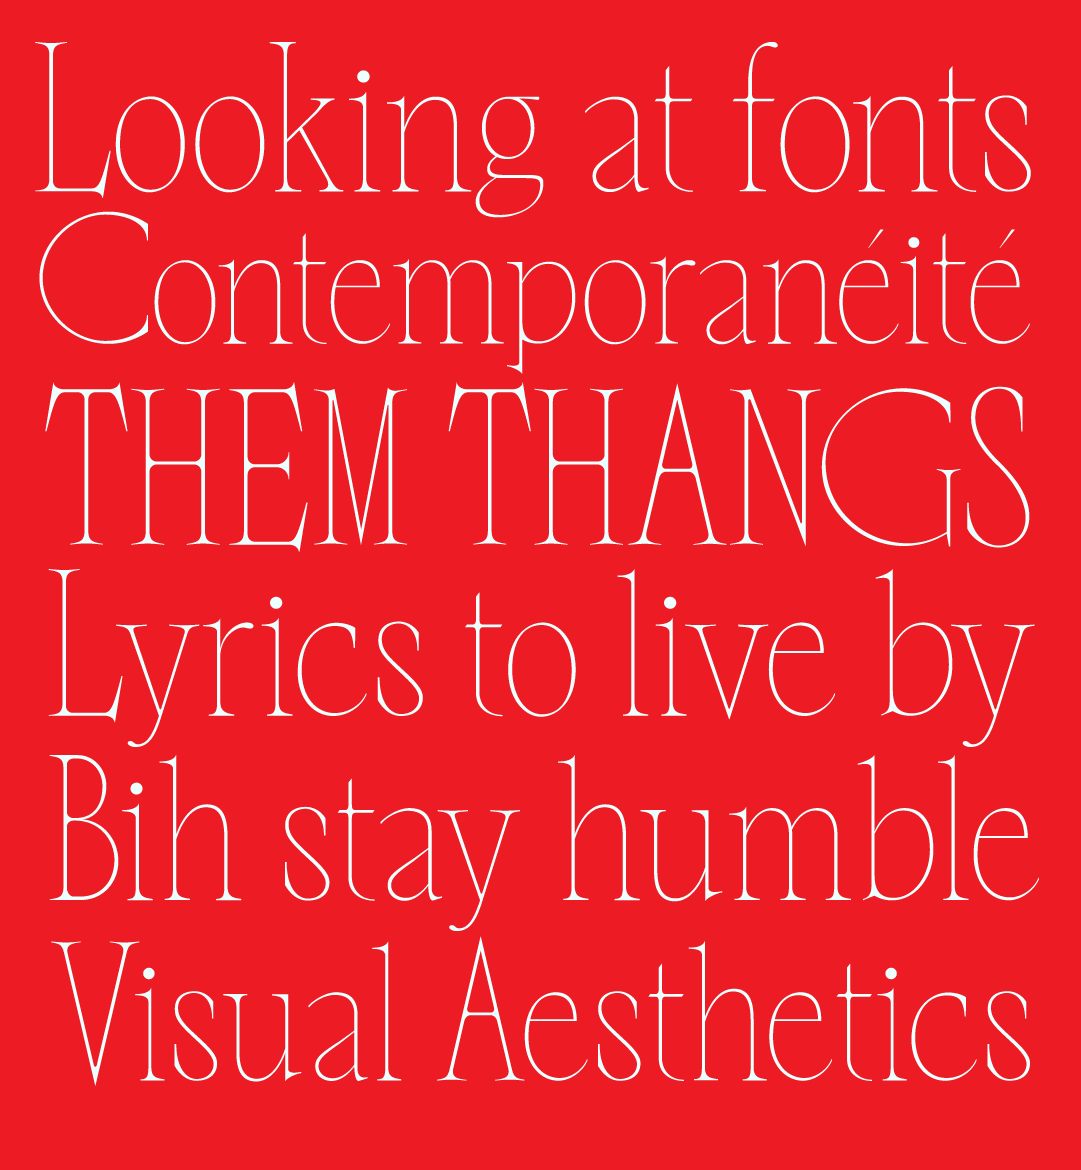 Nero Alto, a new typeface designed by Mateo Broillet available from Typeverything.com